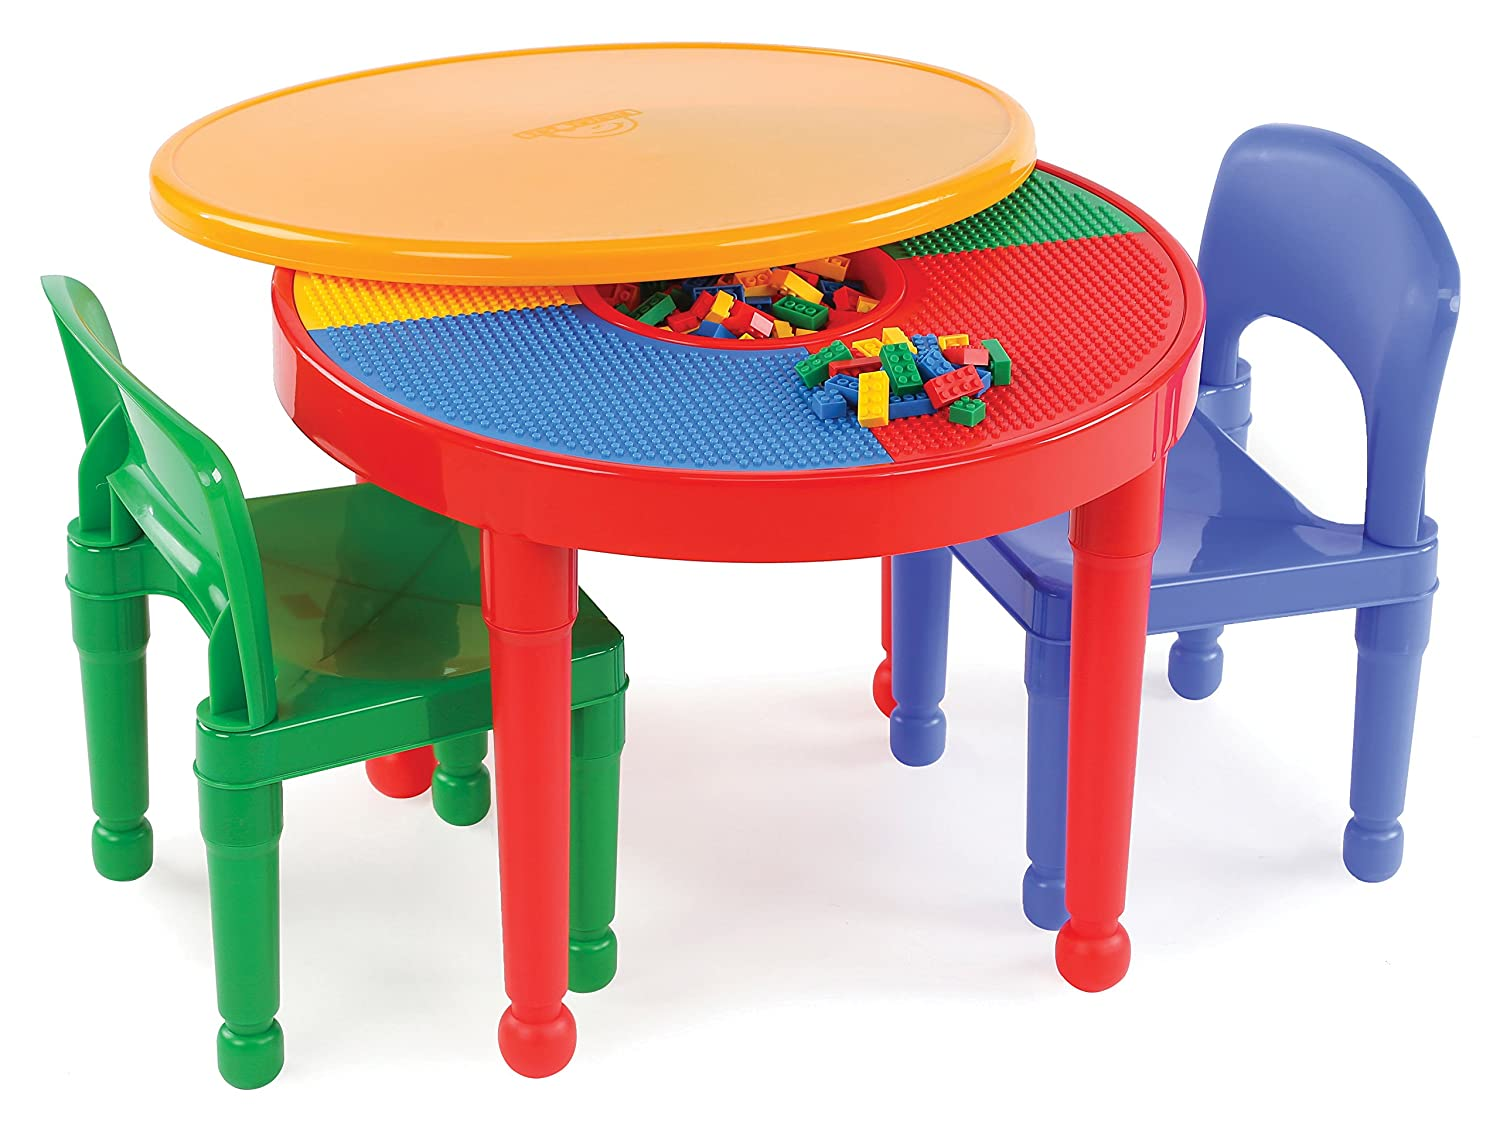 Tot Tutors Kids 2-in-1 Plastic Building Blocks-Compatible Activity Table and 2 Chairs Set